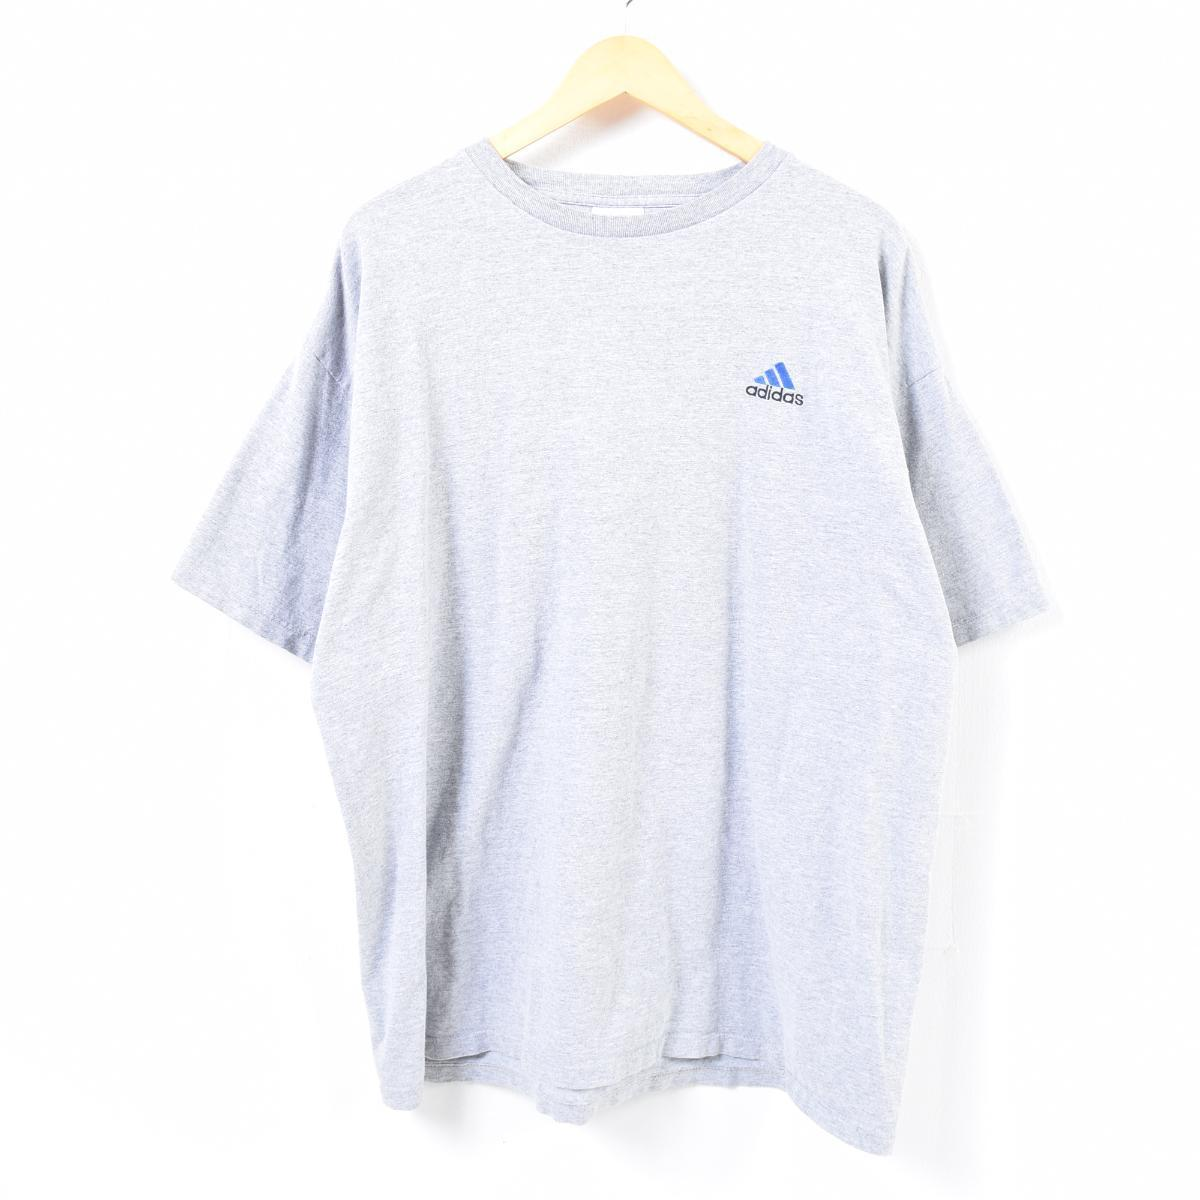 870cb3594 Men XL /war6226 in the 90s made in Adidas adidas one point logo T- ...